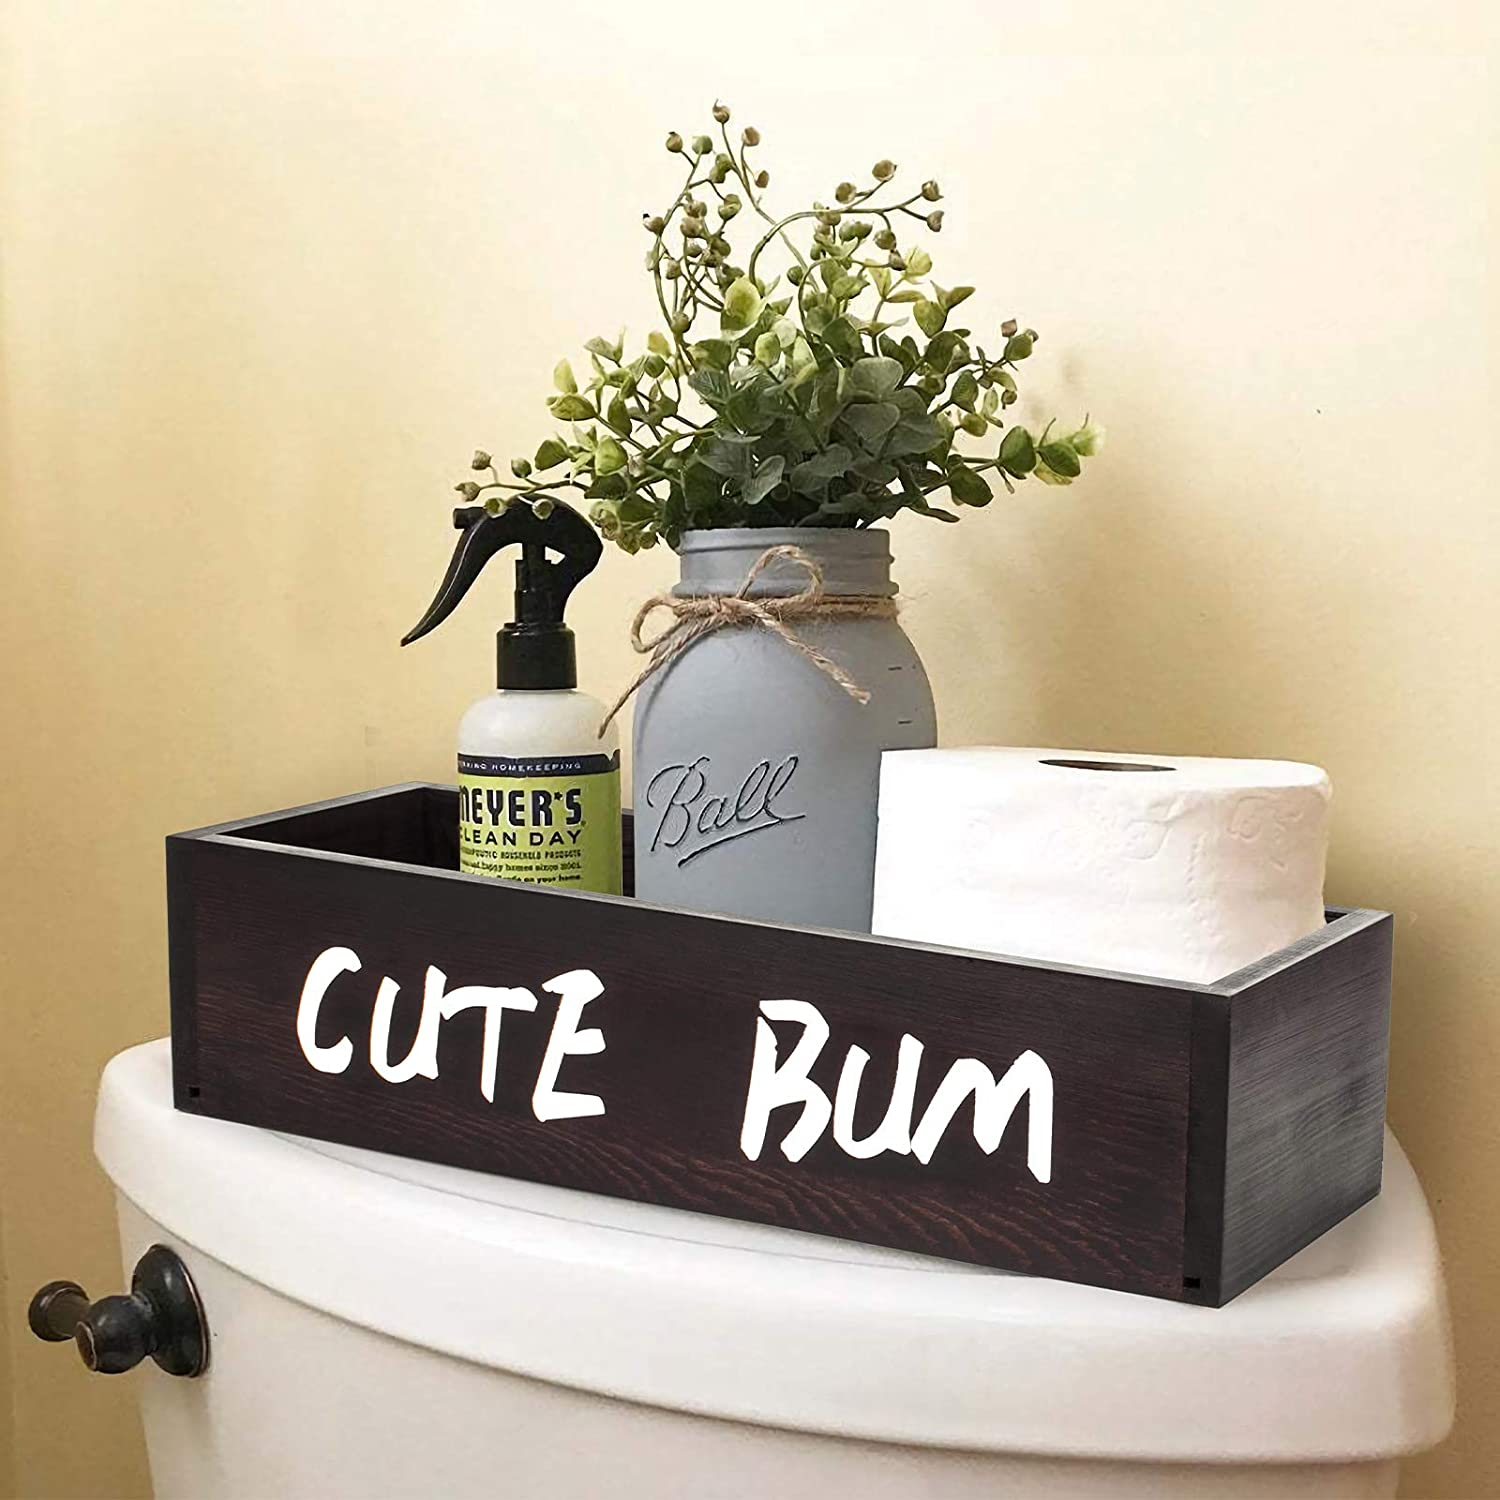 AKKO Bathroom Decor Box Perfect Toilet Paper Organizer Storage for Home Decor Rustic Wood Toilet Paper Holder with 2 Sides Funny Sign